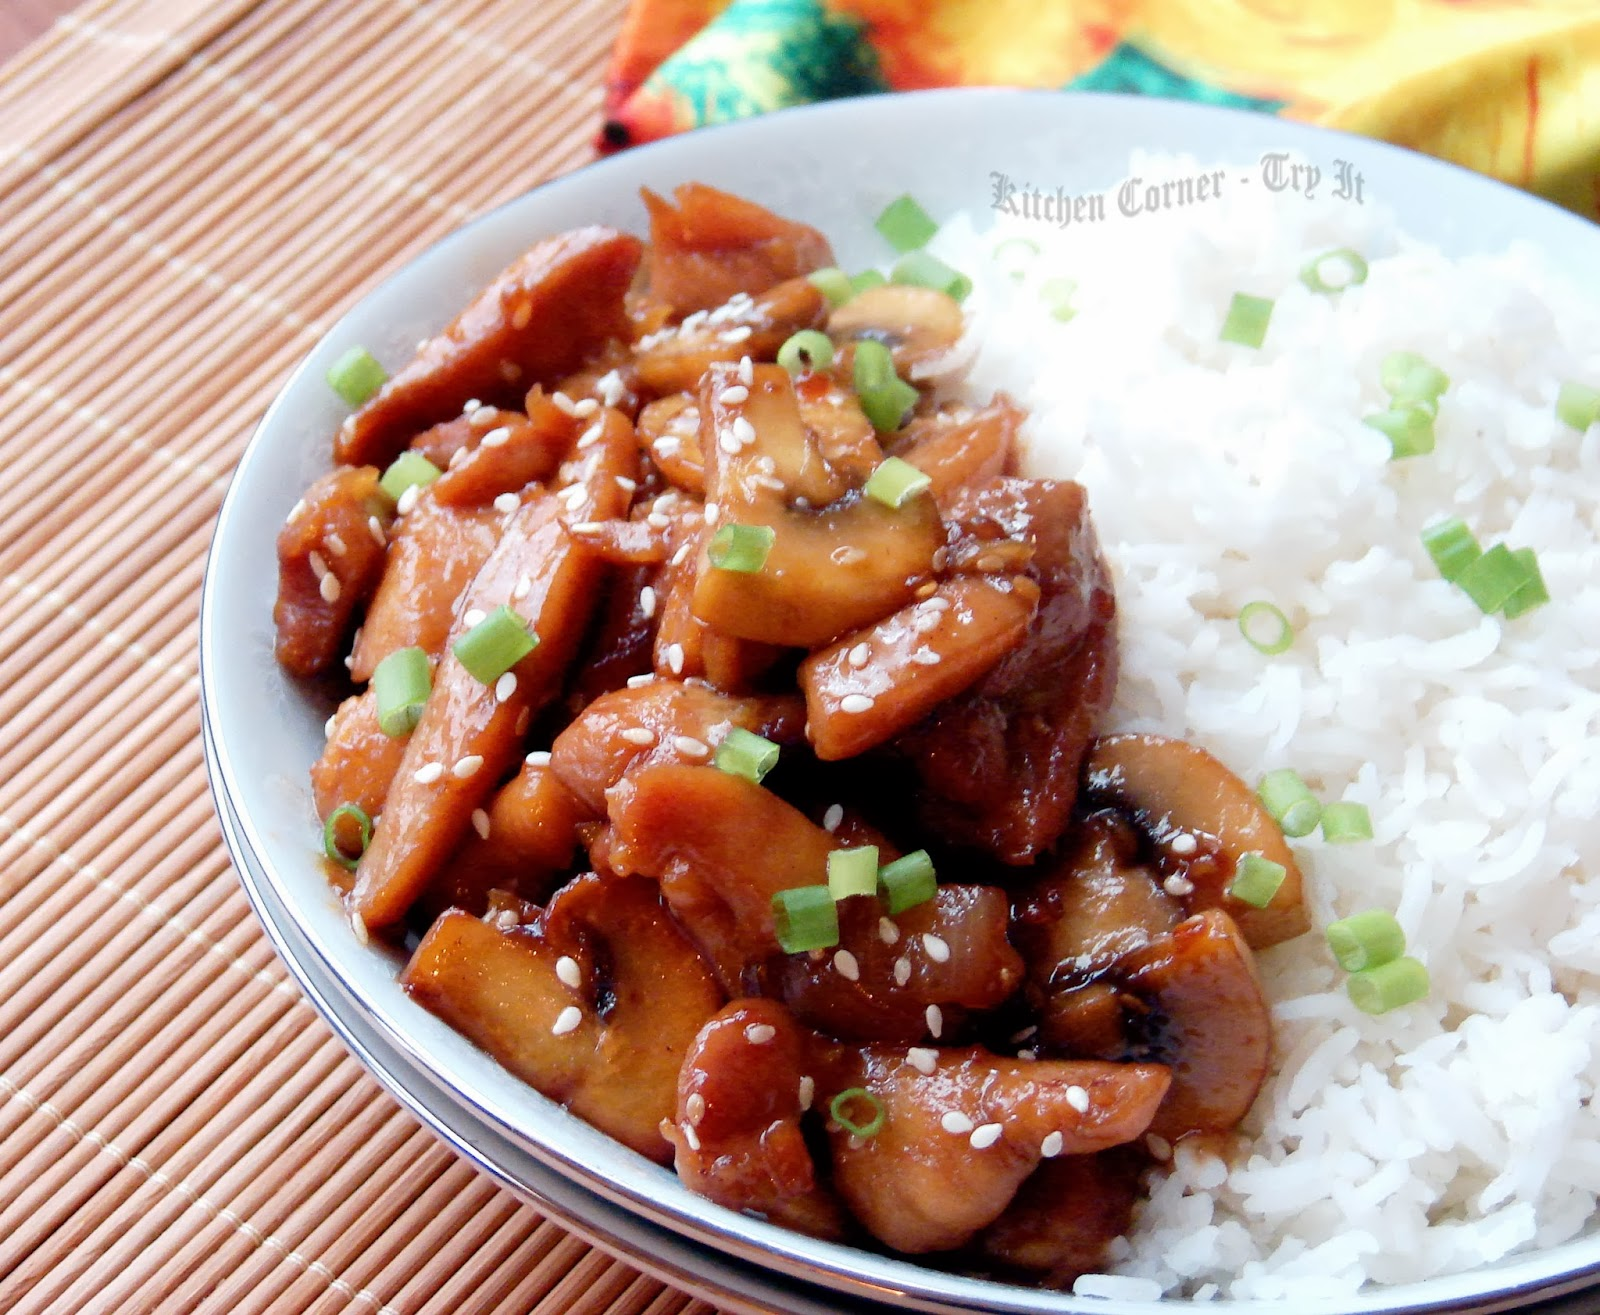 Kitchen Corner-Try It: Mushrooms and Chicken Teriyaki